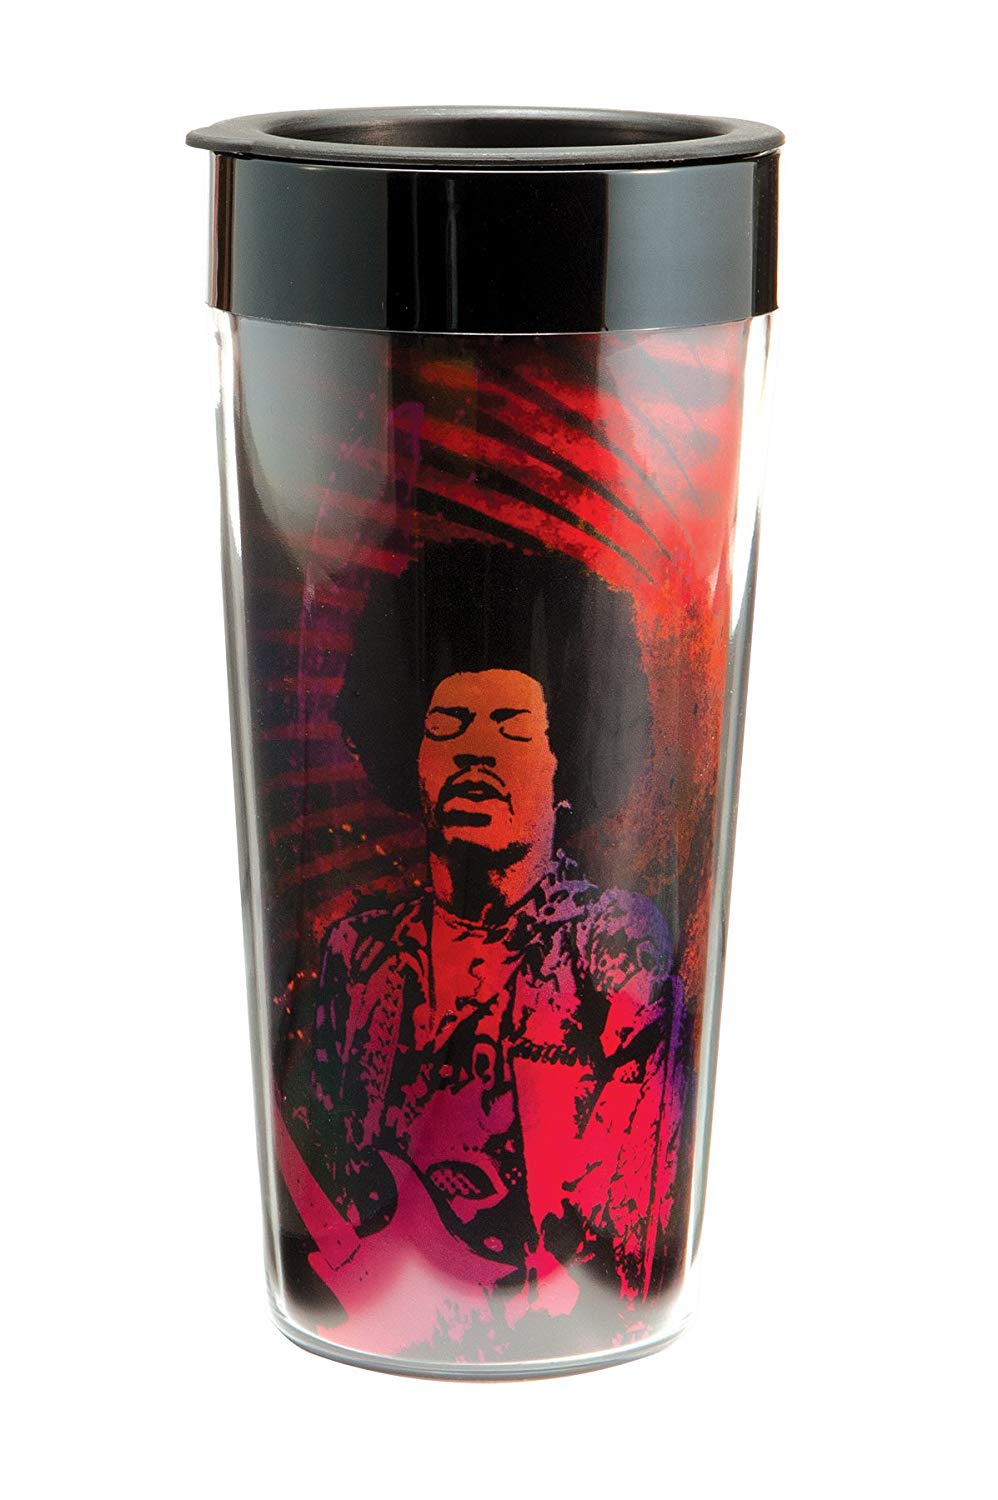 Vandor 34151 Jimi Hendrix Plastic Travel Mug, Multicolored, 16-Ounce